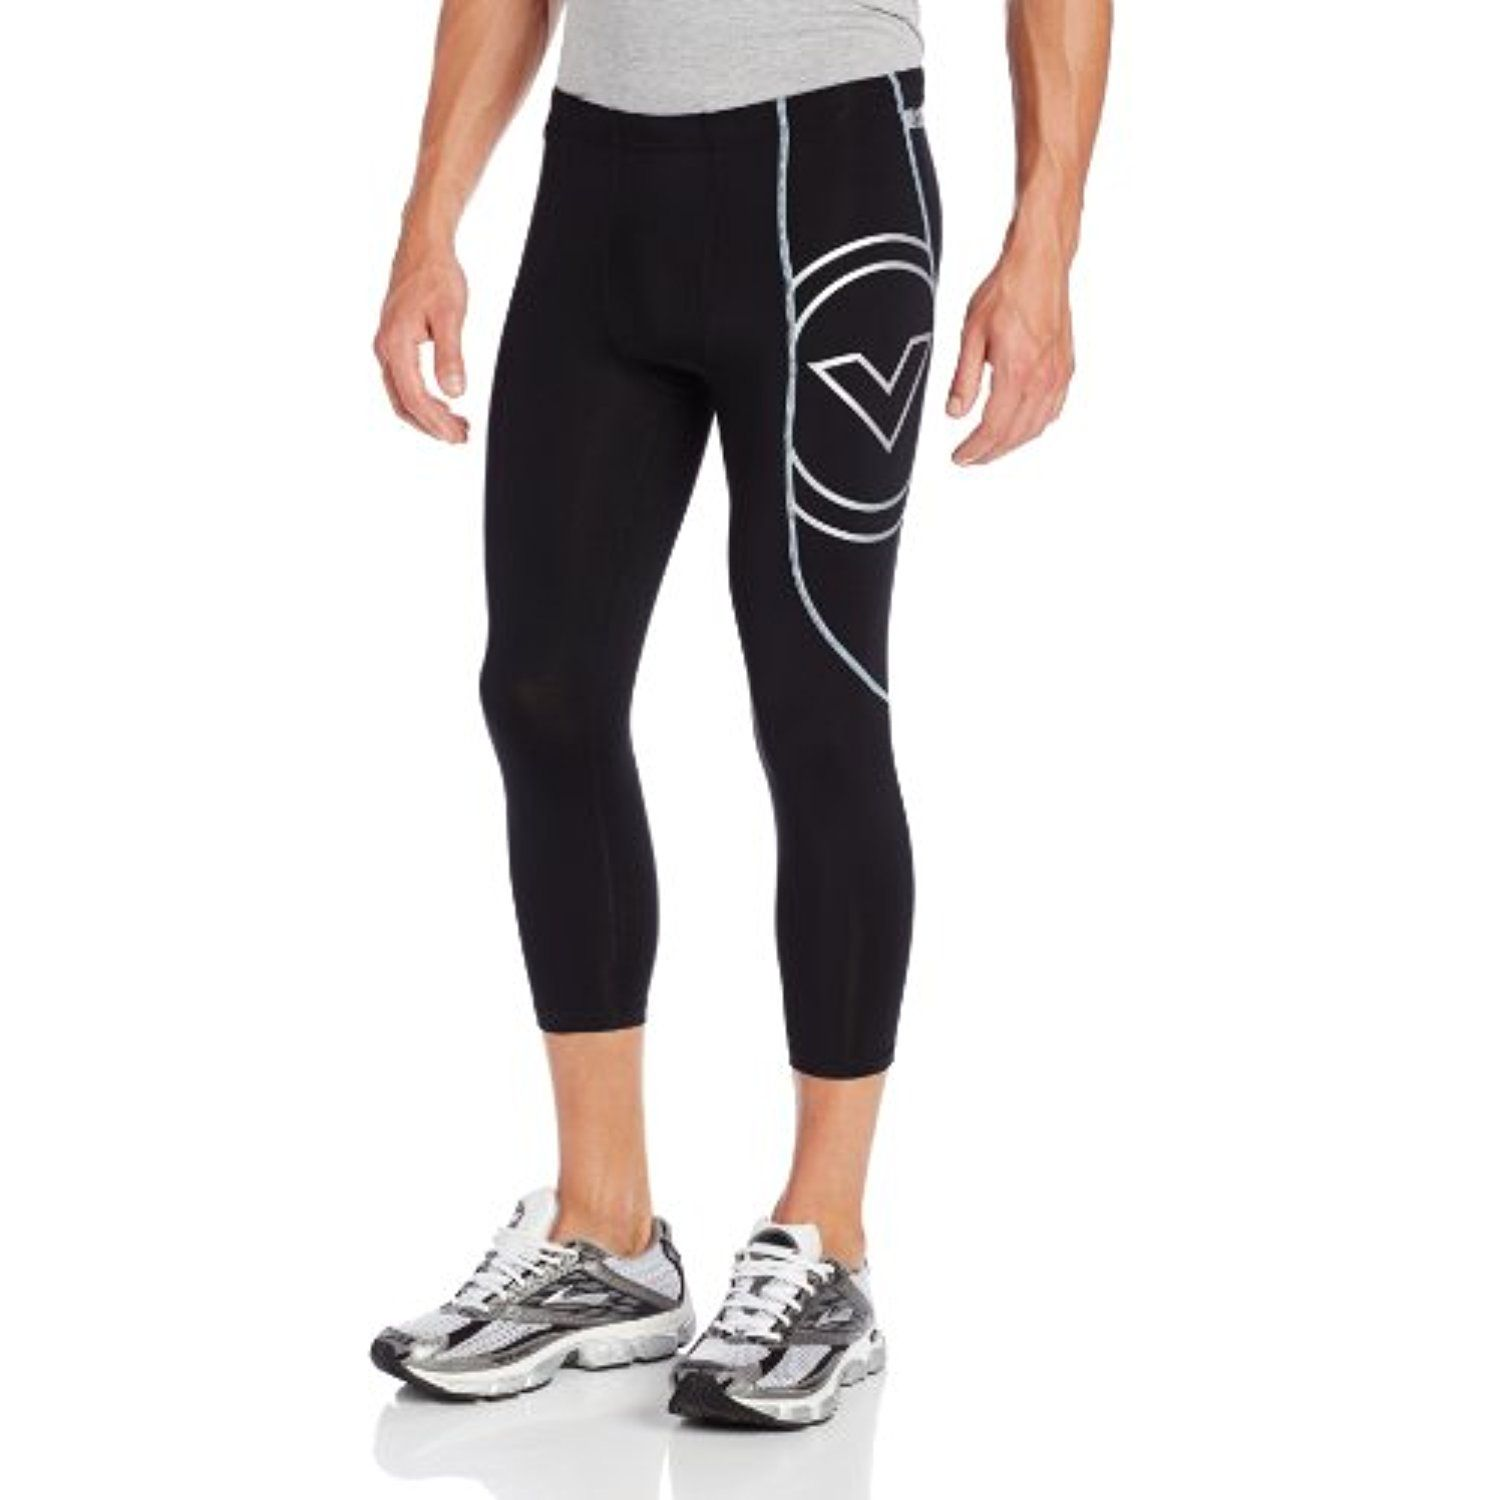 fa3d5f5f344c3 VIRUS Men's Stay Cool Tech 3/4 Length Compression Pants *** You can find  more details by visiting the image link. (This is an affiliate link) # Clothing